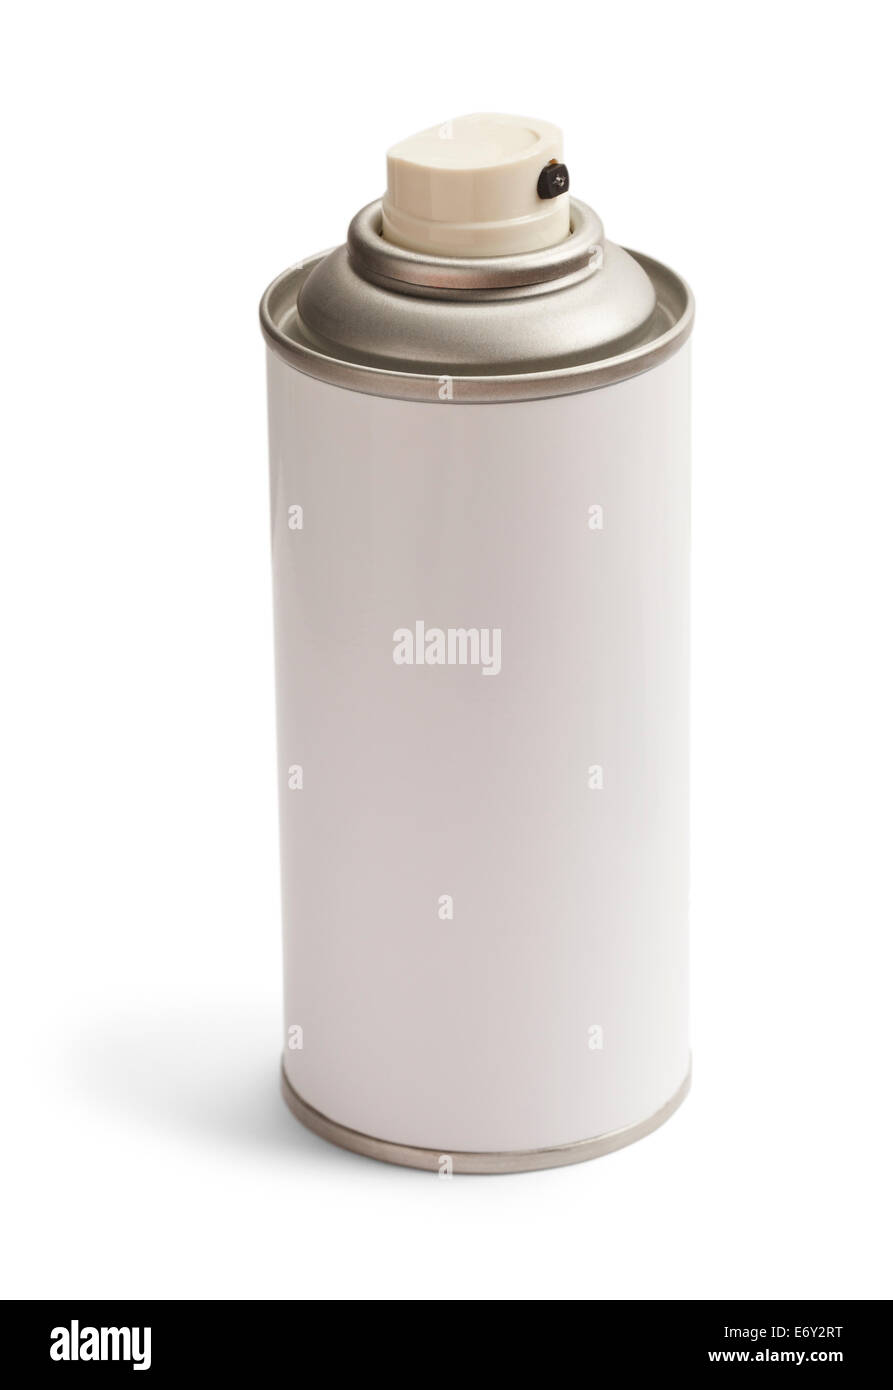 Blank Generic White Spray Can Isolated on White Background. Stock Photo